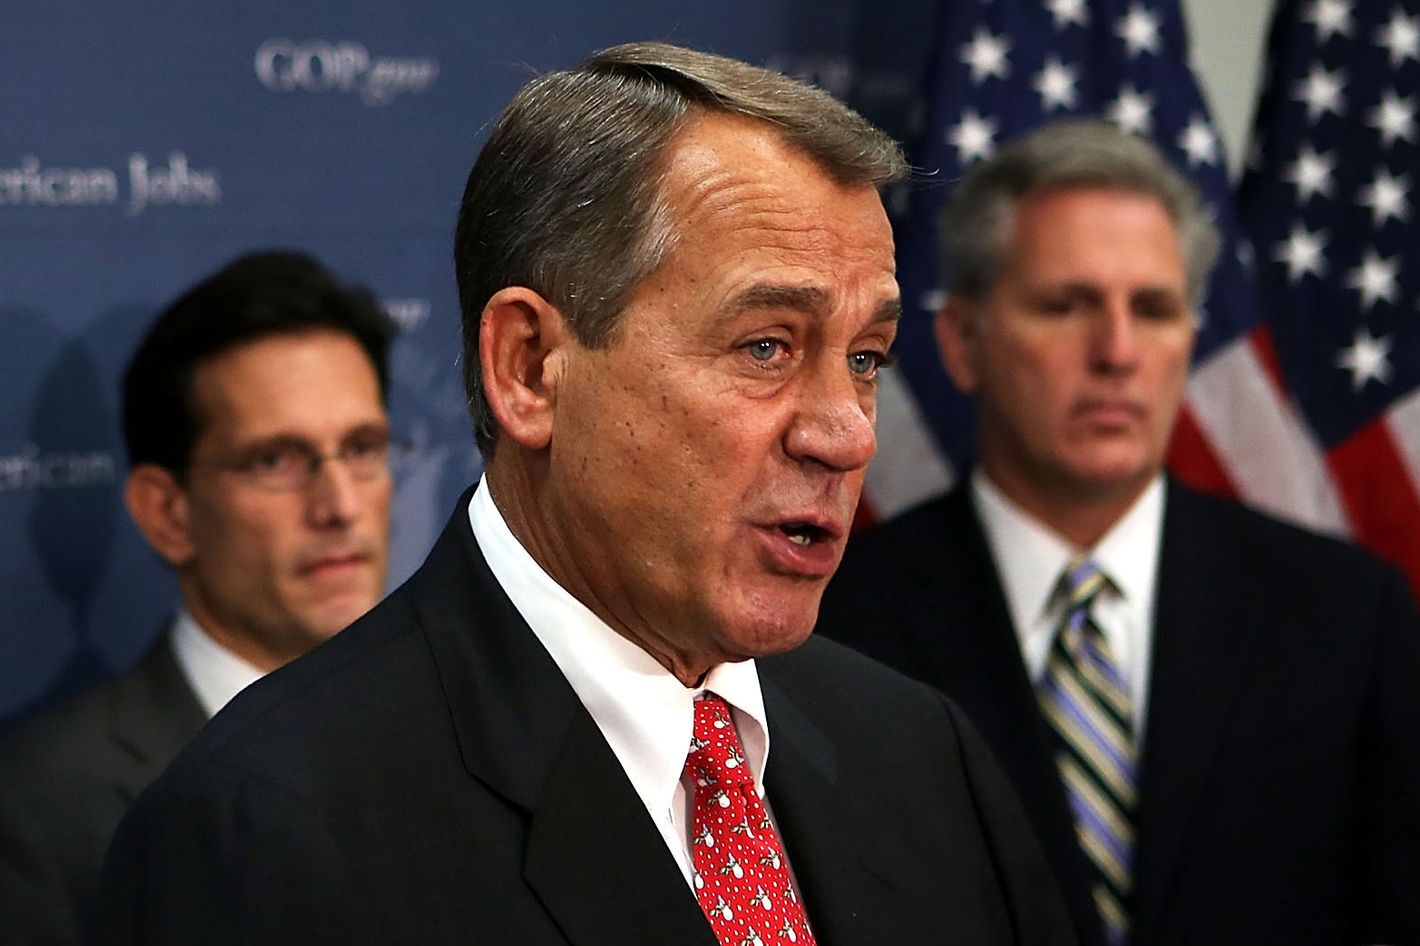 WASHINGTON, DC - DECEMBER 18:  U.S. Speaker of the House Rep. John Boehner (R-OH) (2nd L) speaks as House Majority Leader Rep. Eric Cantor (R-VA) (L) and House Majority Whip Rep. Kevin McCarthy (R-CA) (R) listens during a media availability after a House Republican Conference meeting December 18, 2012 on Capitol Hill in Washington, DC. Speaker Boehner announced that he is moving to a plan B to solve the fiscal cliff issue and he will put a bill on the floor that increases taxes for people whose incomes are more than one million dollars.  (Photo by Alex Wong/Getty Images)